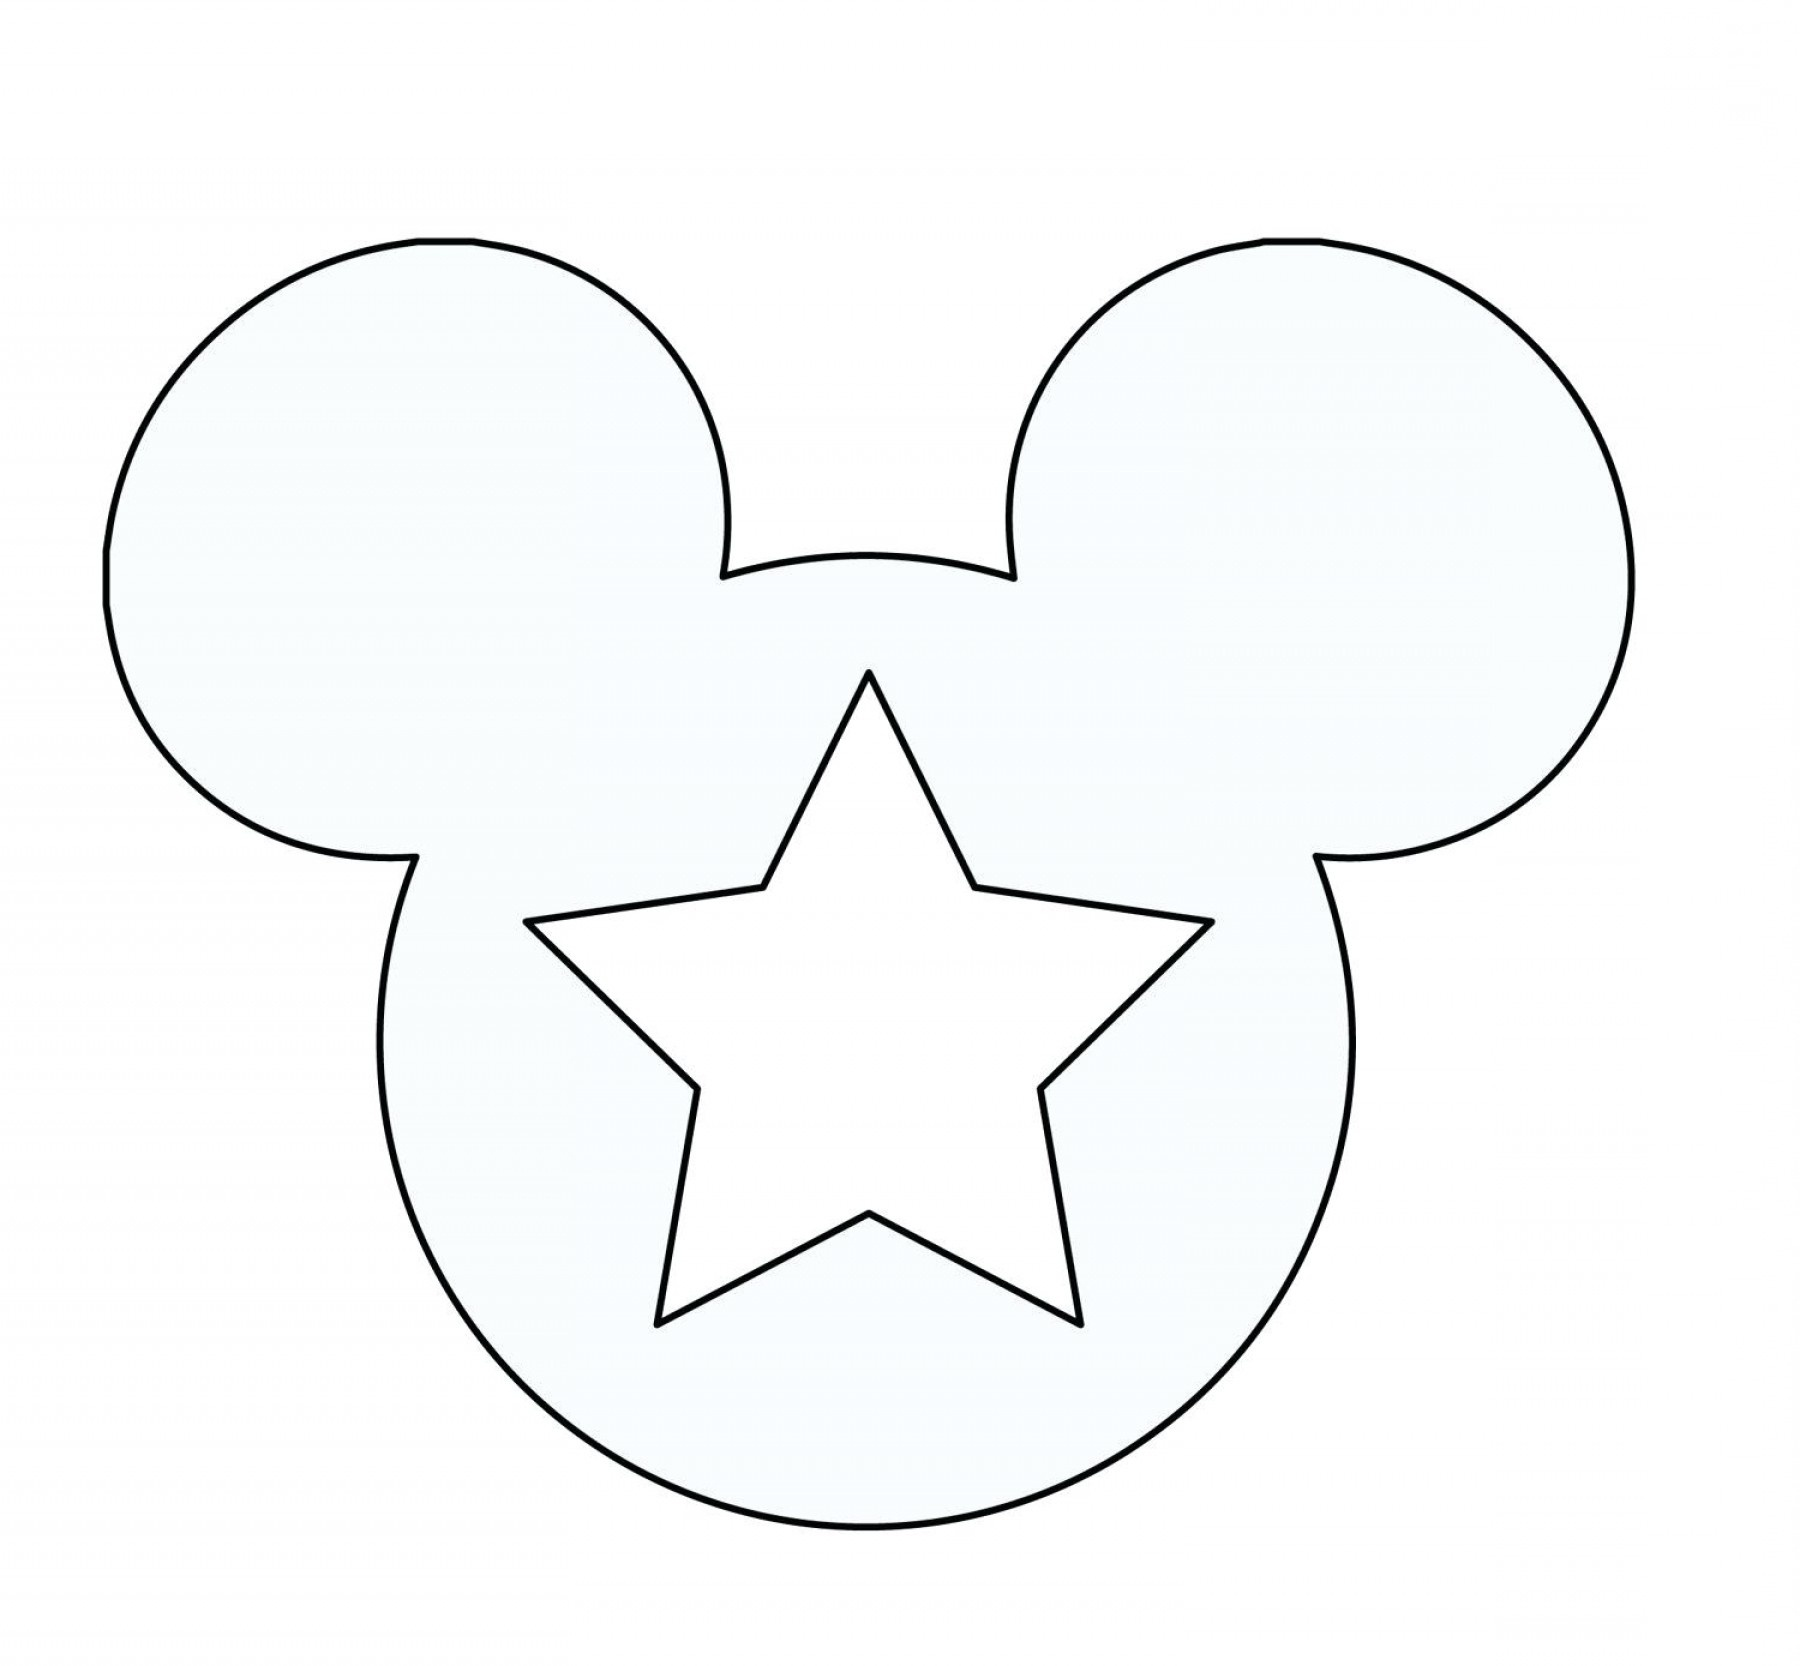 Mickey Mouse Ears Printable Coloring Pages Ghost Free Outline Large - Free Printable Mickey Mouse Head